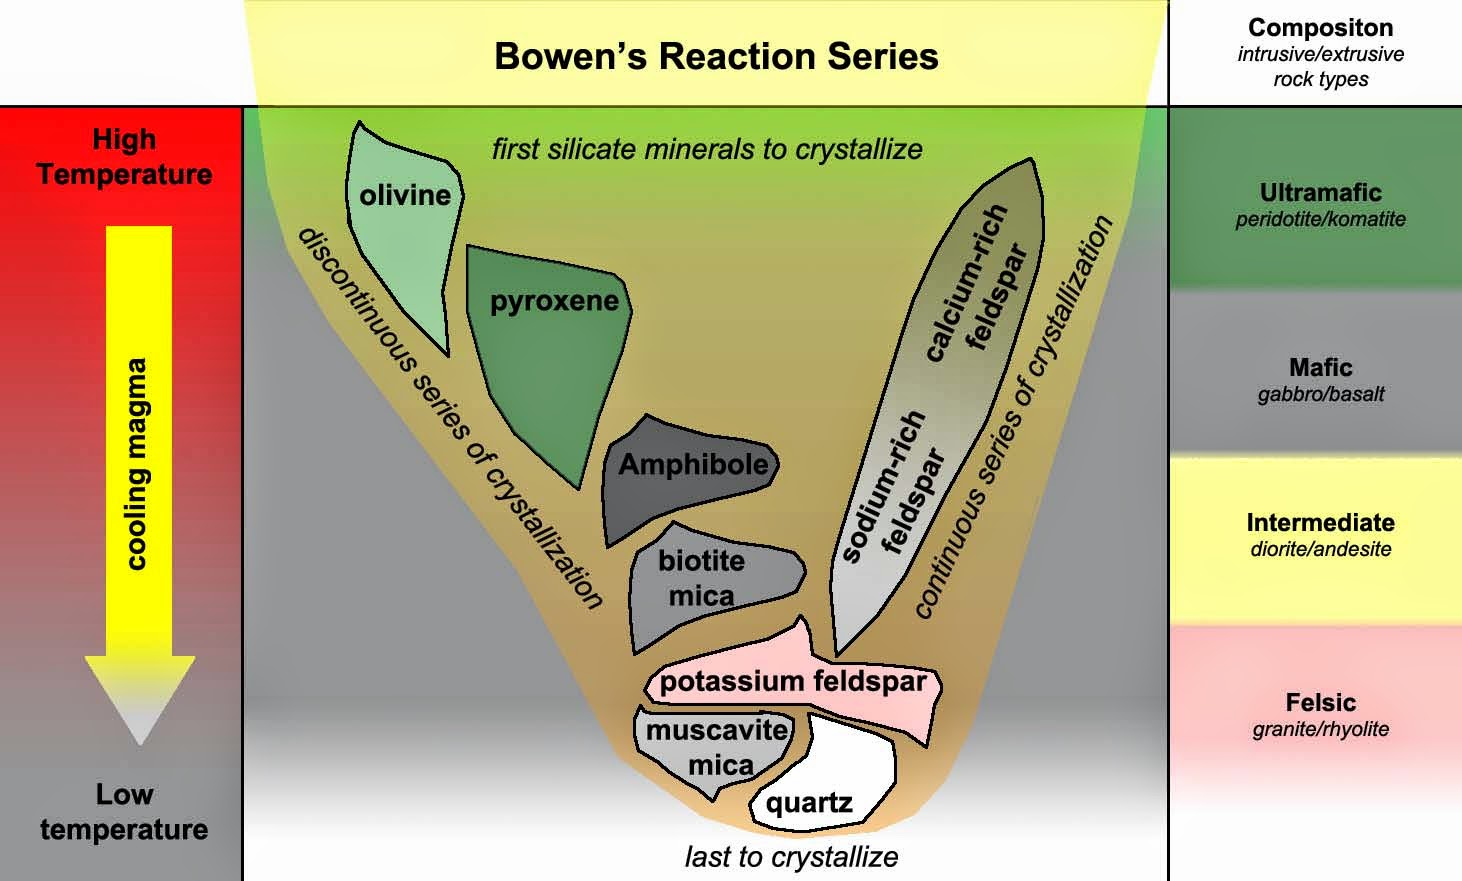 how does bowen s reaction series relate to the classification of igneous rock  [ 1462 x 881 Pixel ]